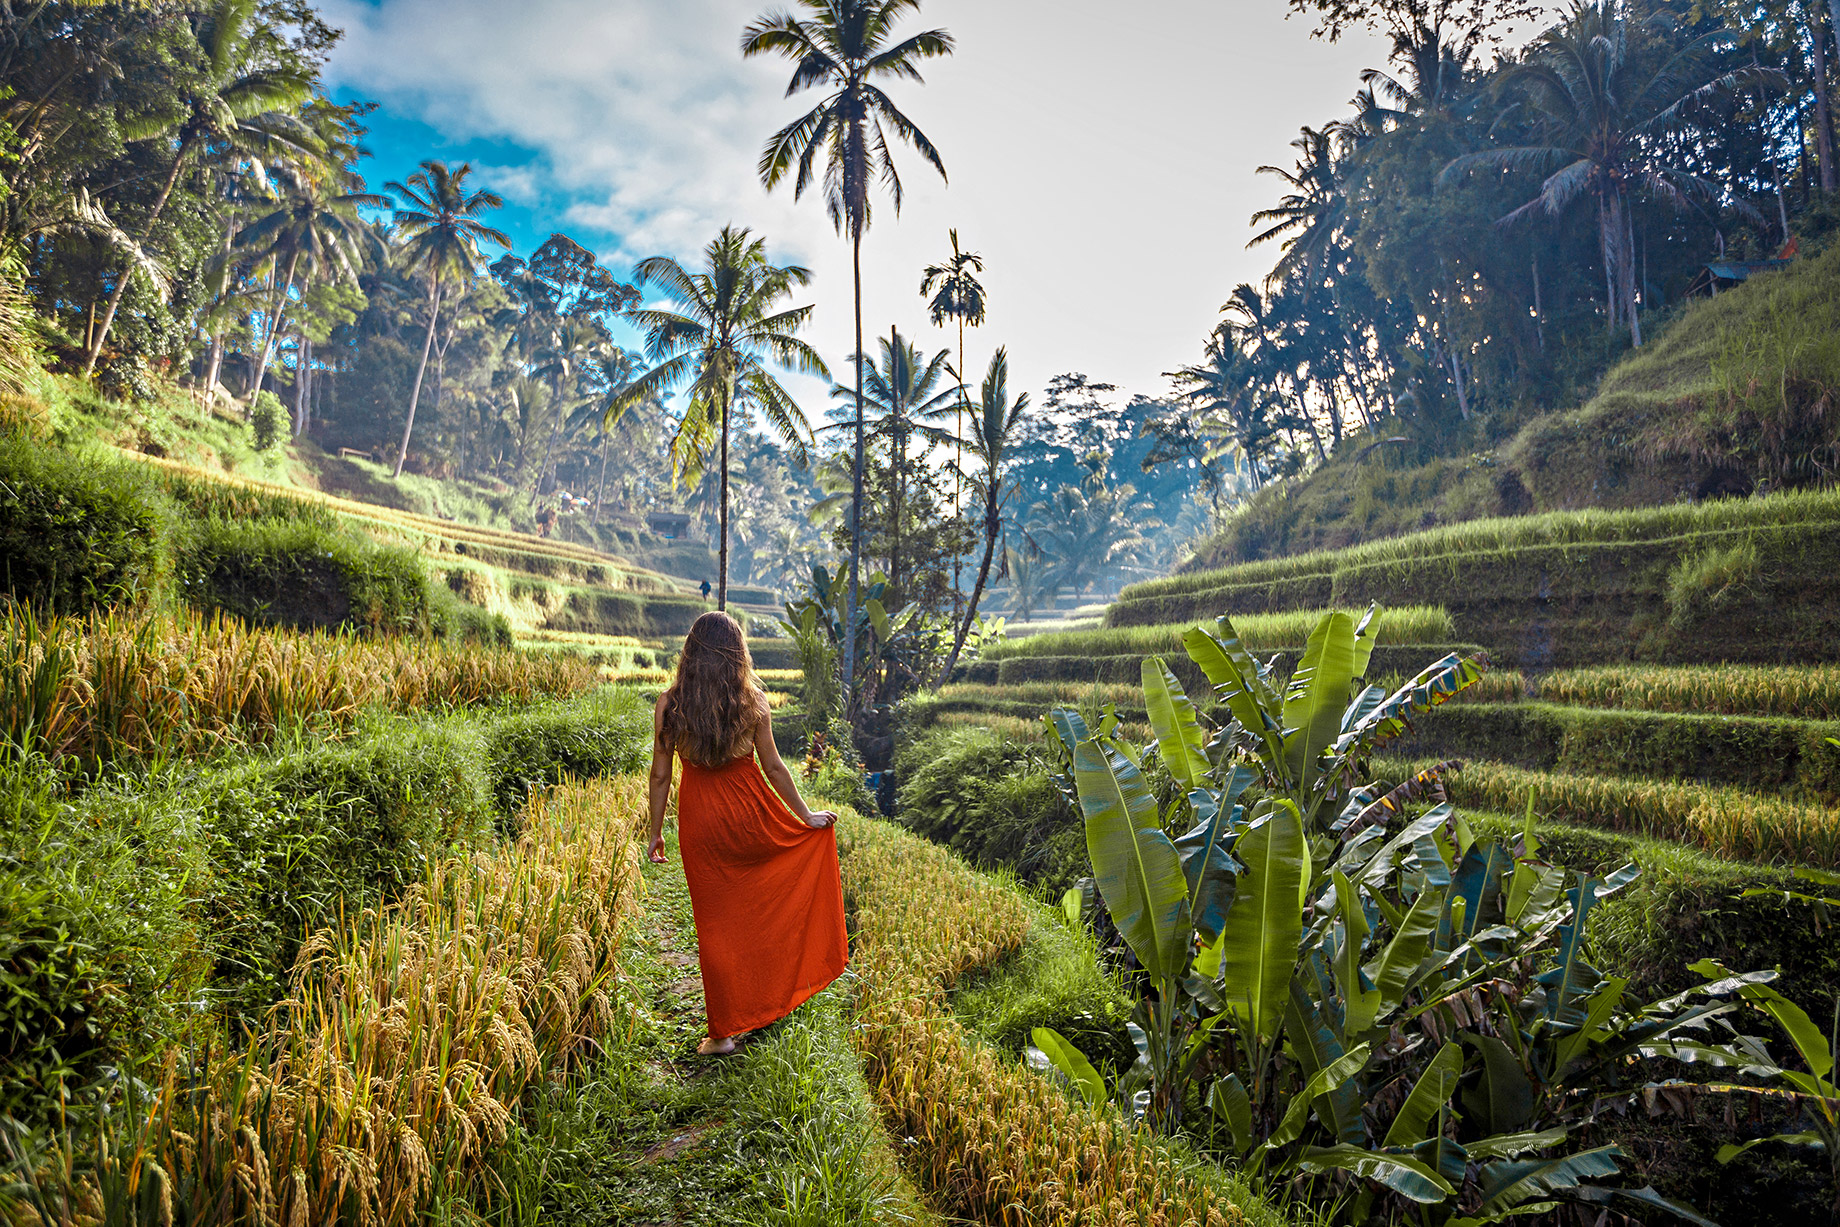 Rice Fields - Tegallalang, Bali, Indonesia